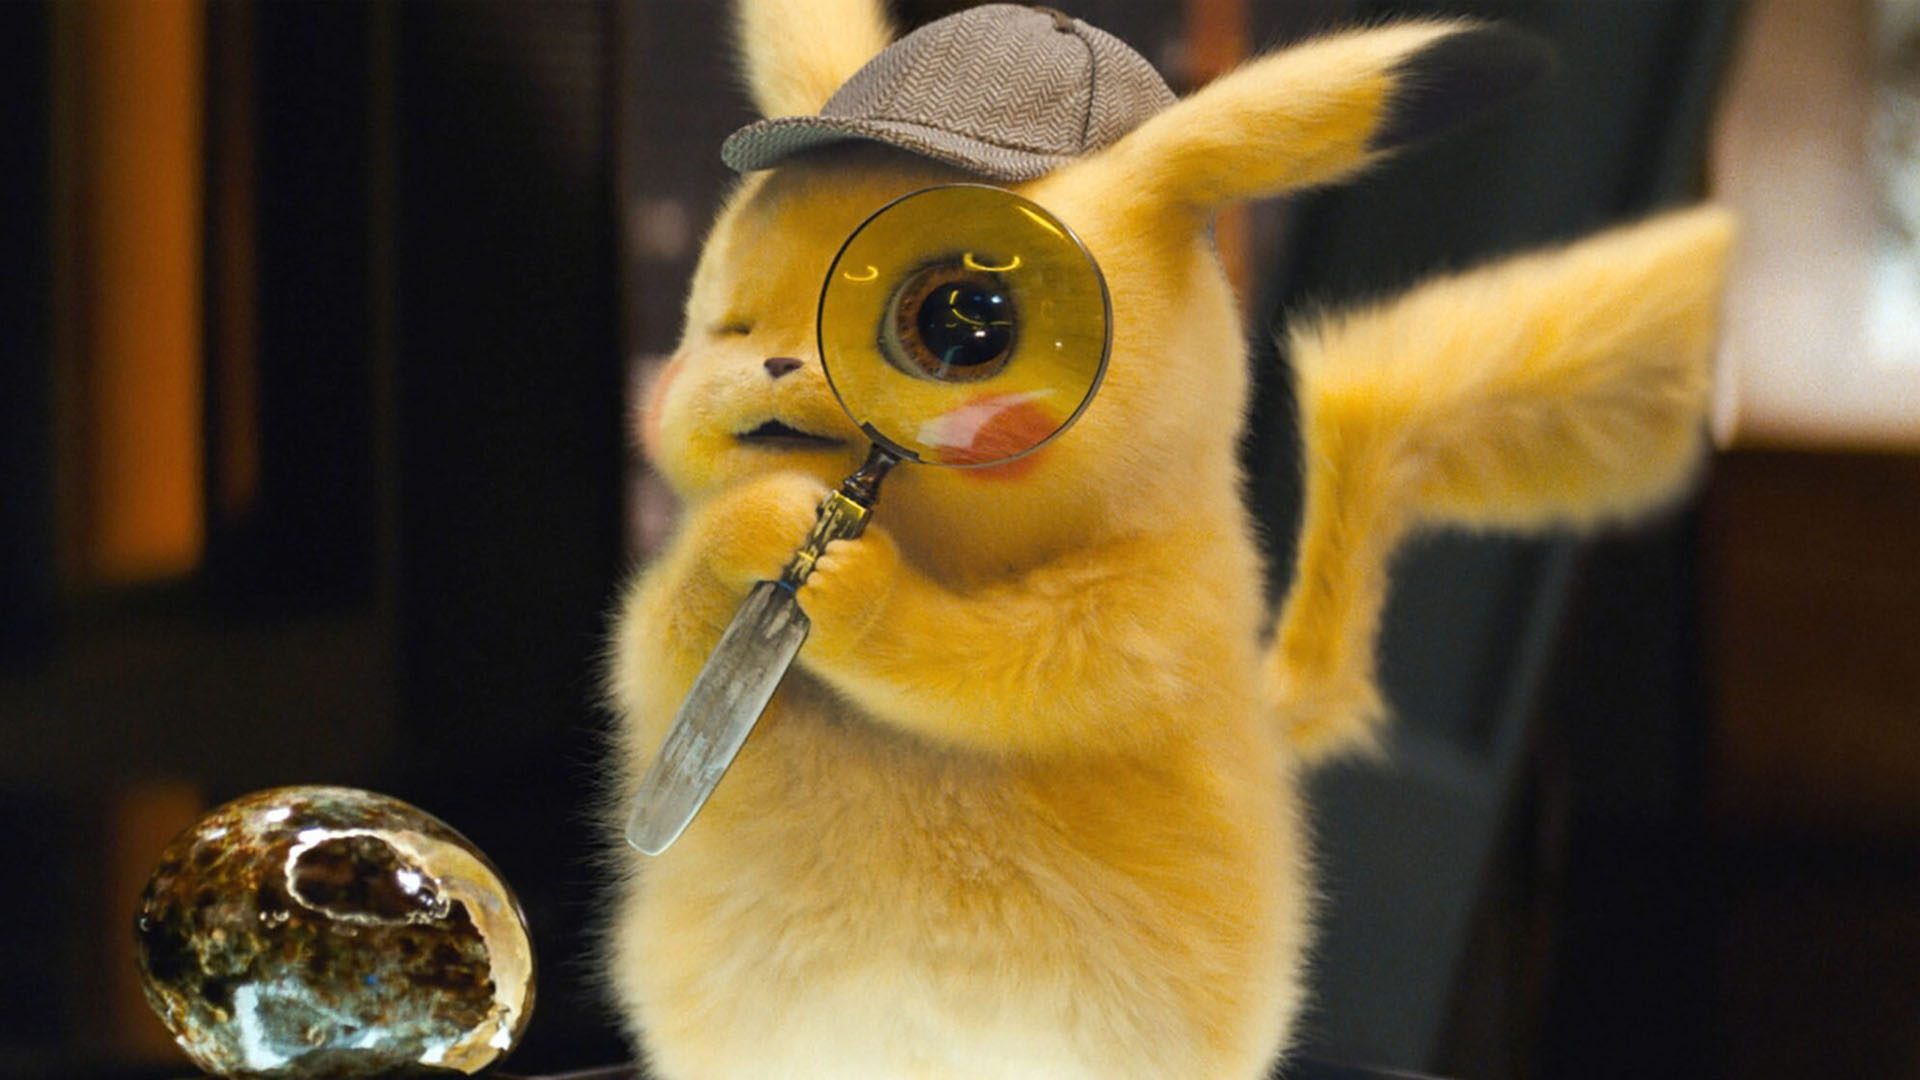 Live-Action Pokemon Series Now in Early Development at Netflix